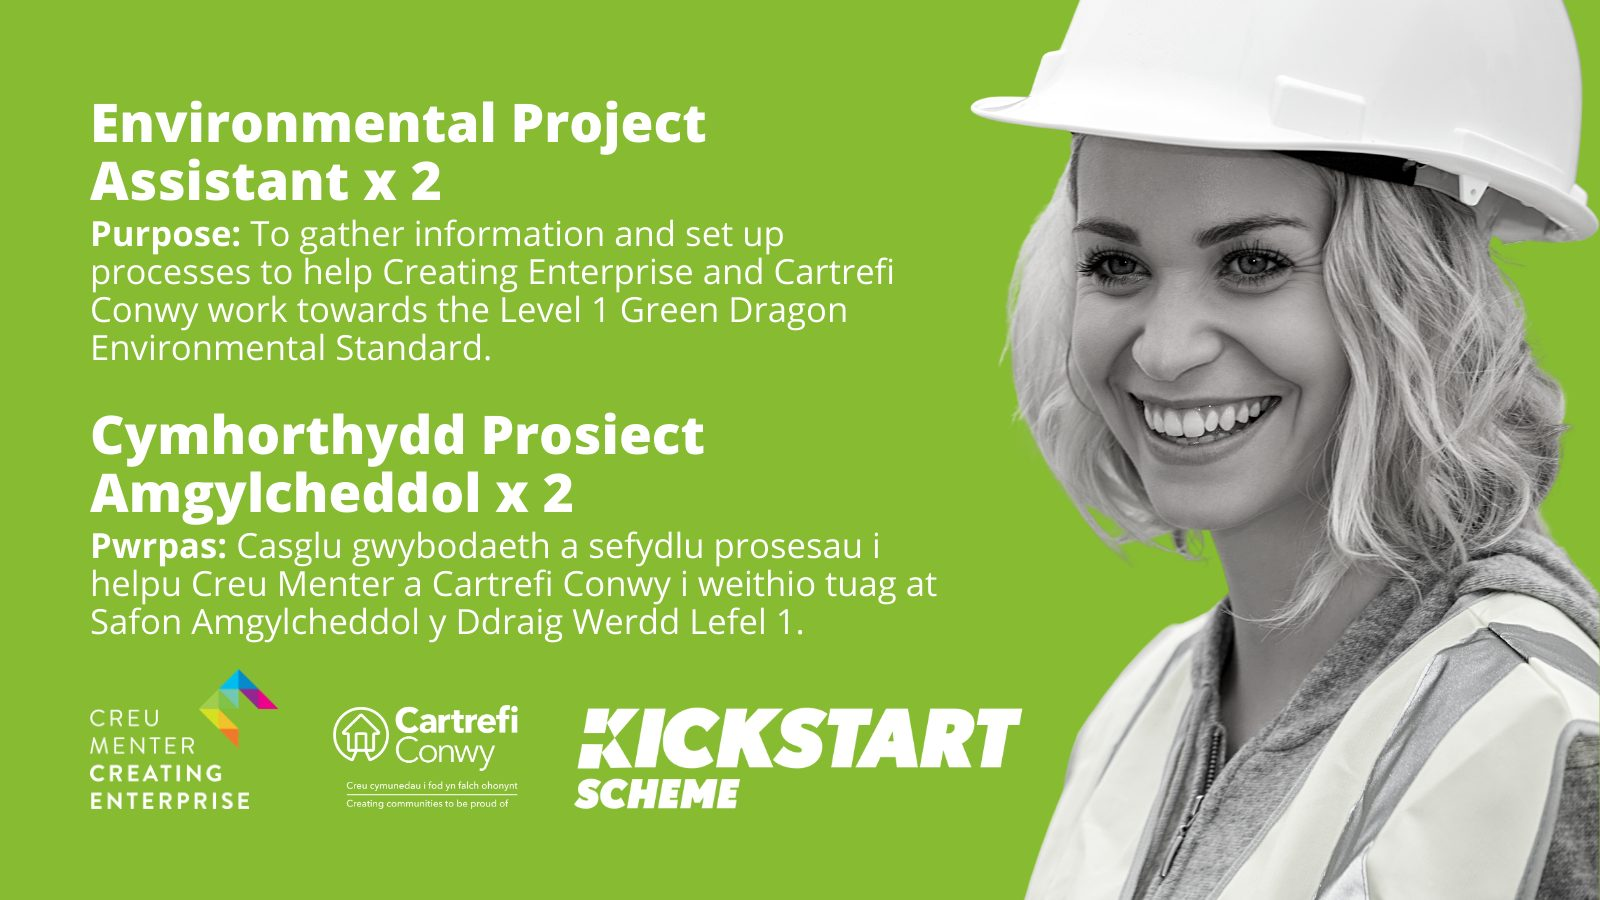 Environmental Project Assistant x 2